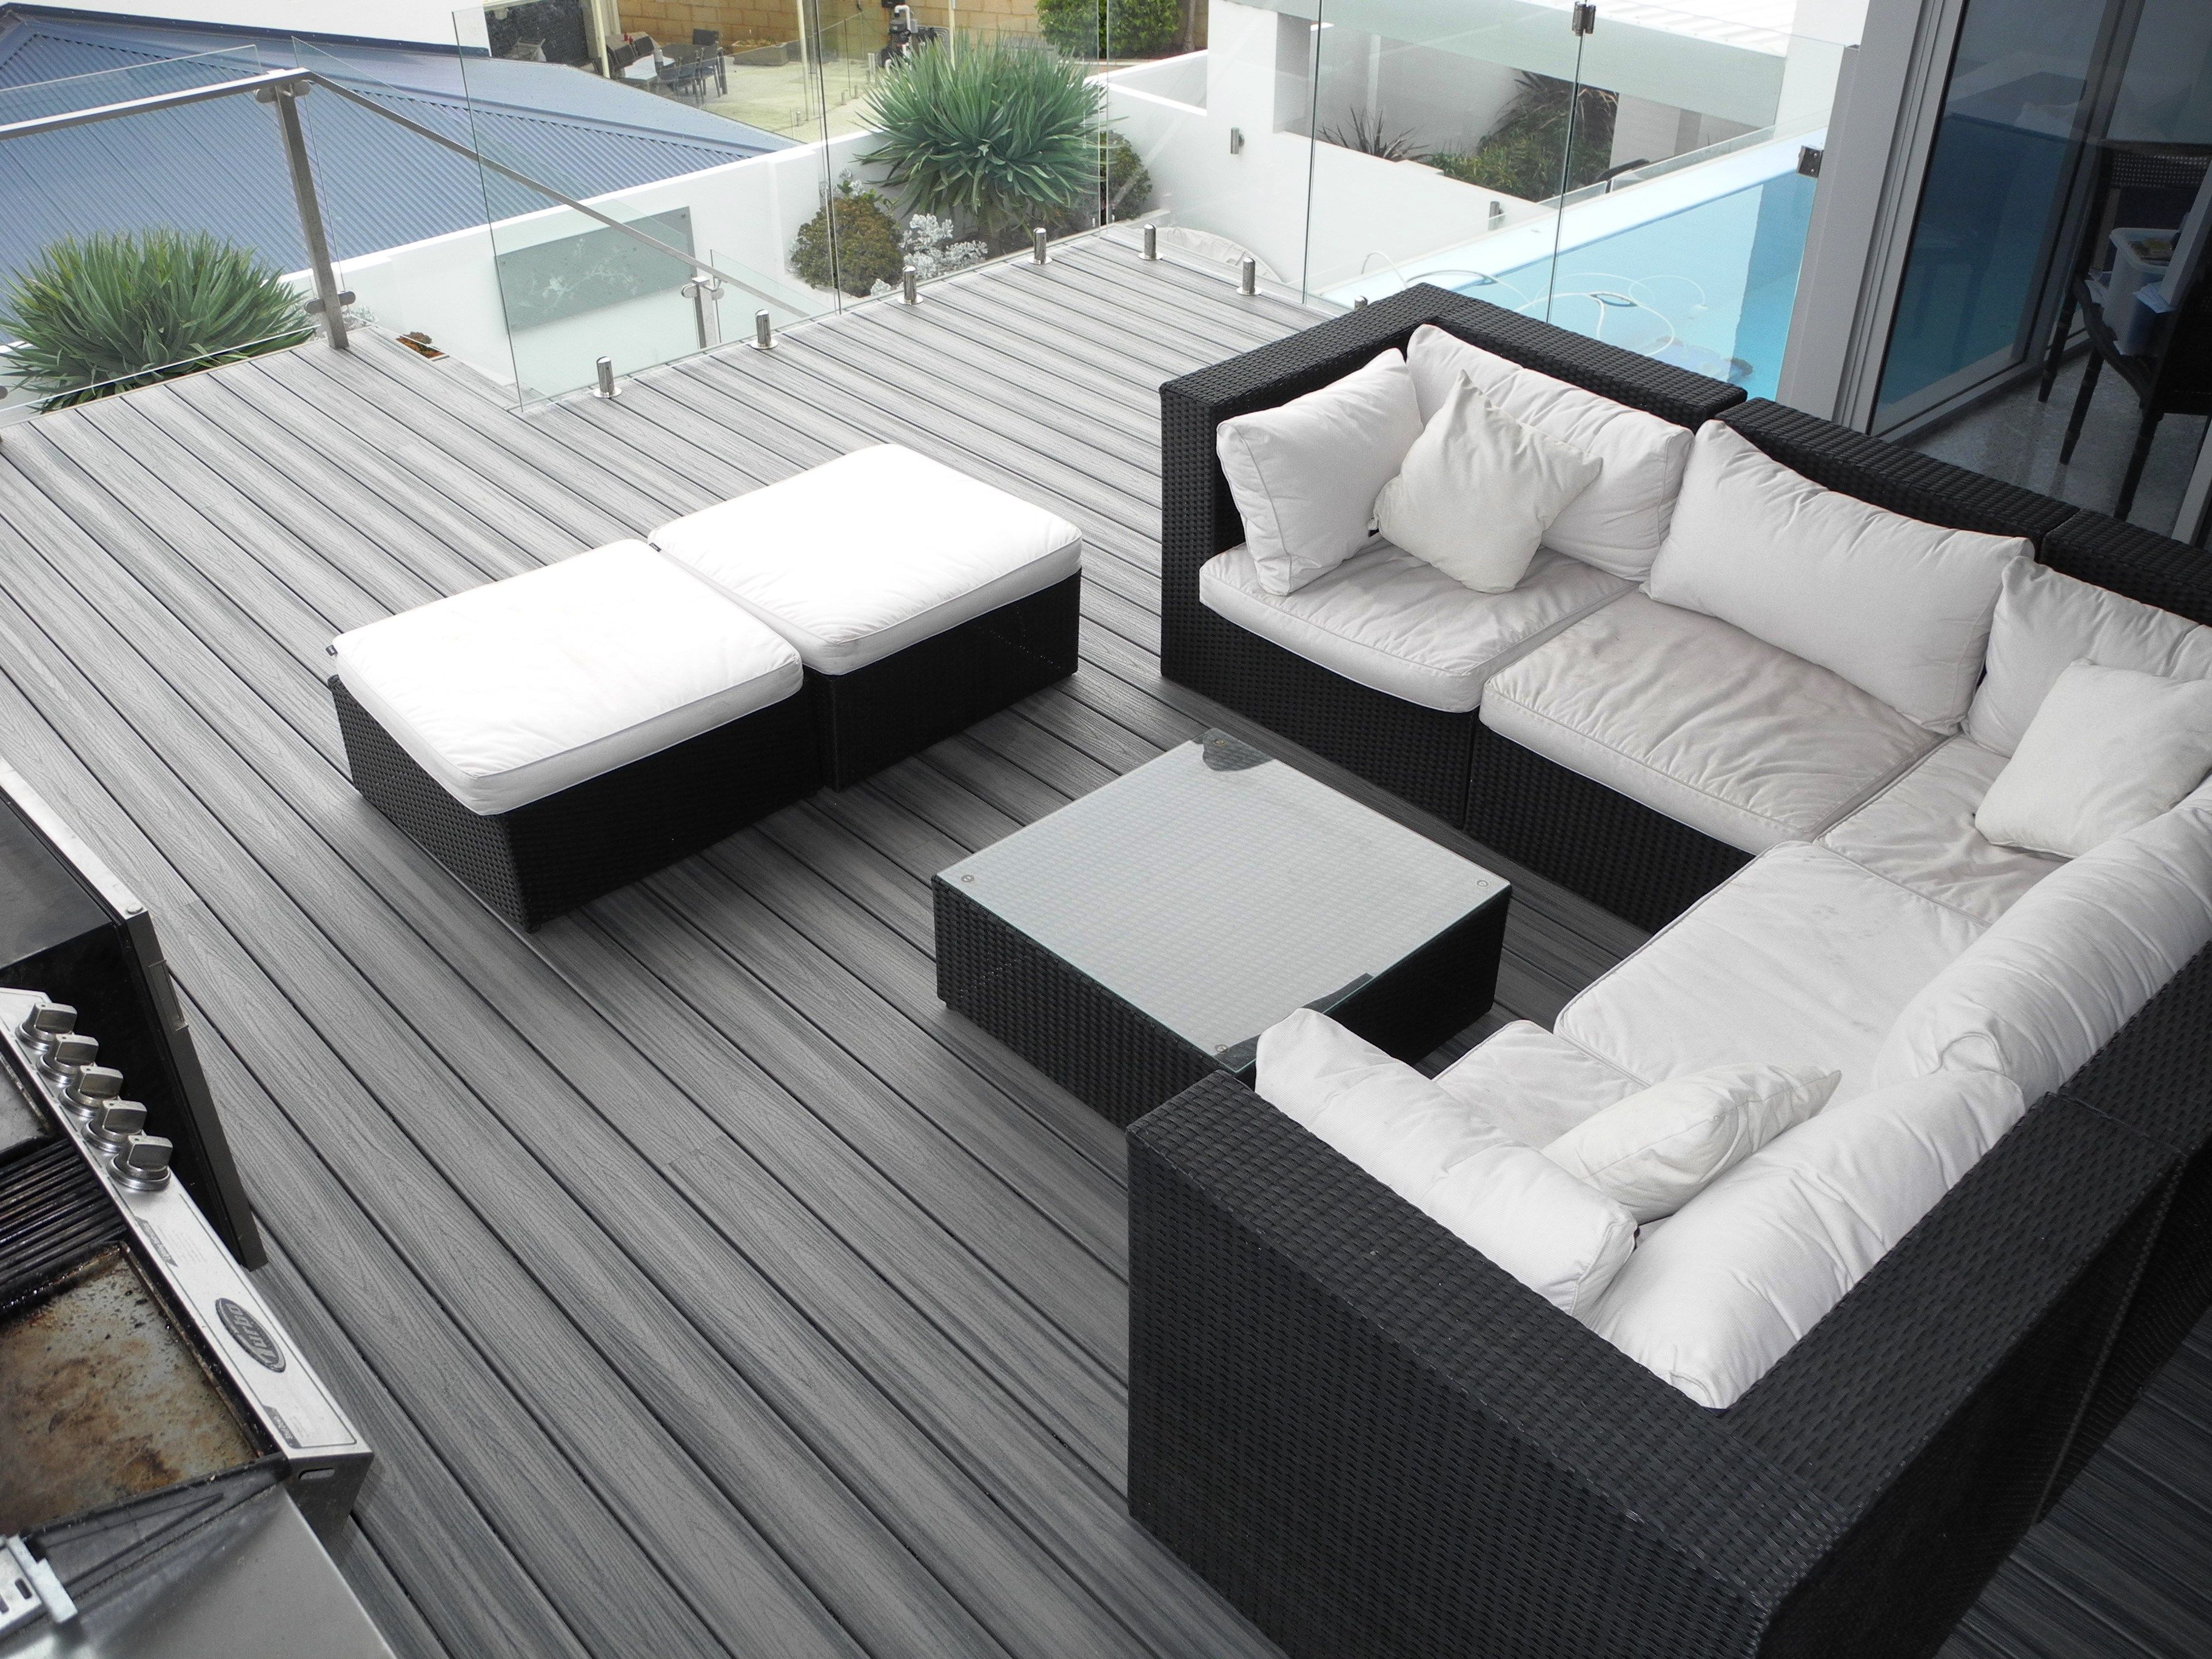 All Style Carpentry built this modern outdoor living space at a